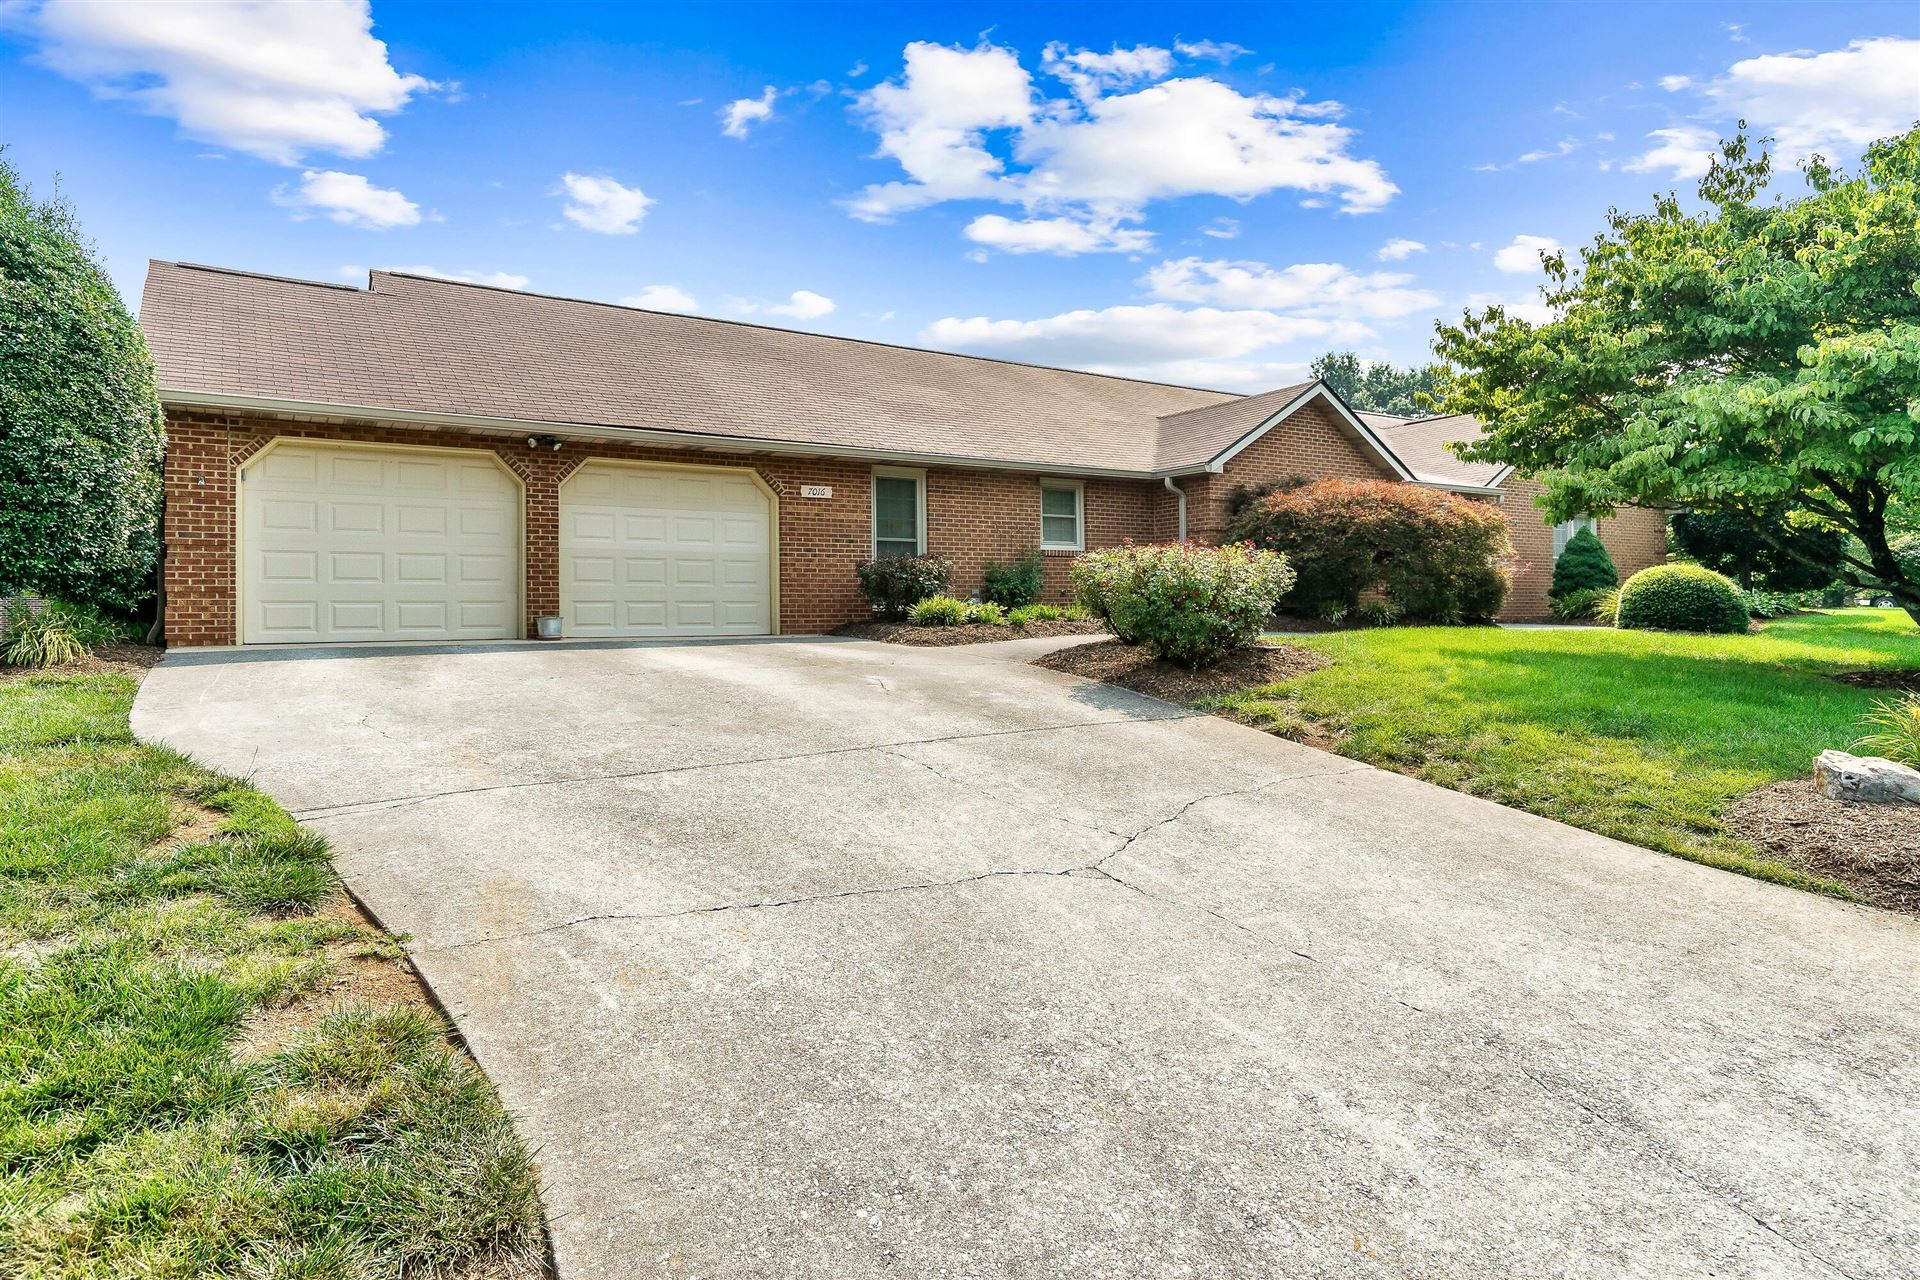 Photo of 7016 Hunters Trail Tr, Knoxville, TN 37921 (MLS # 1160706)